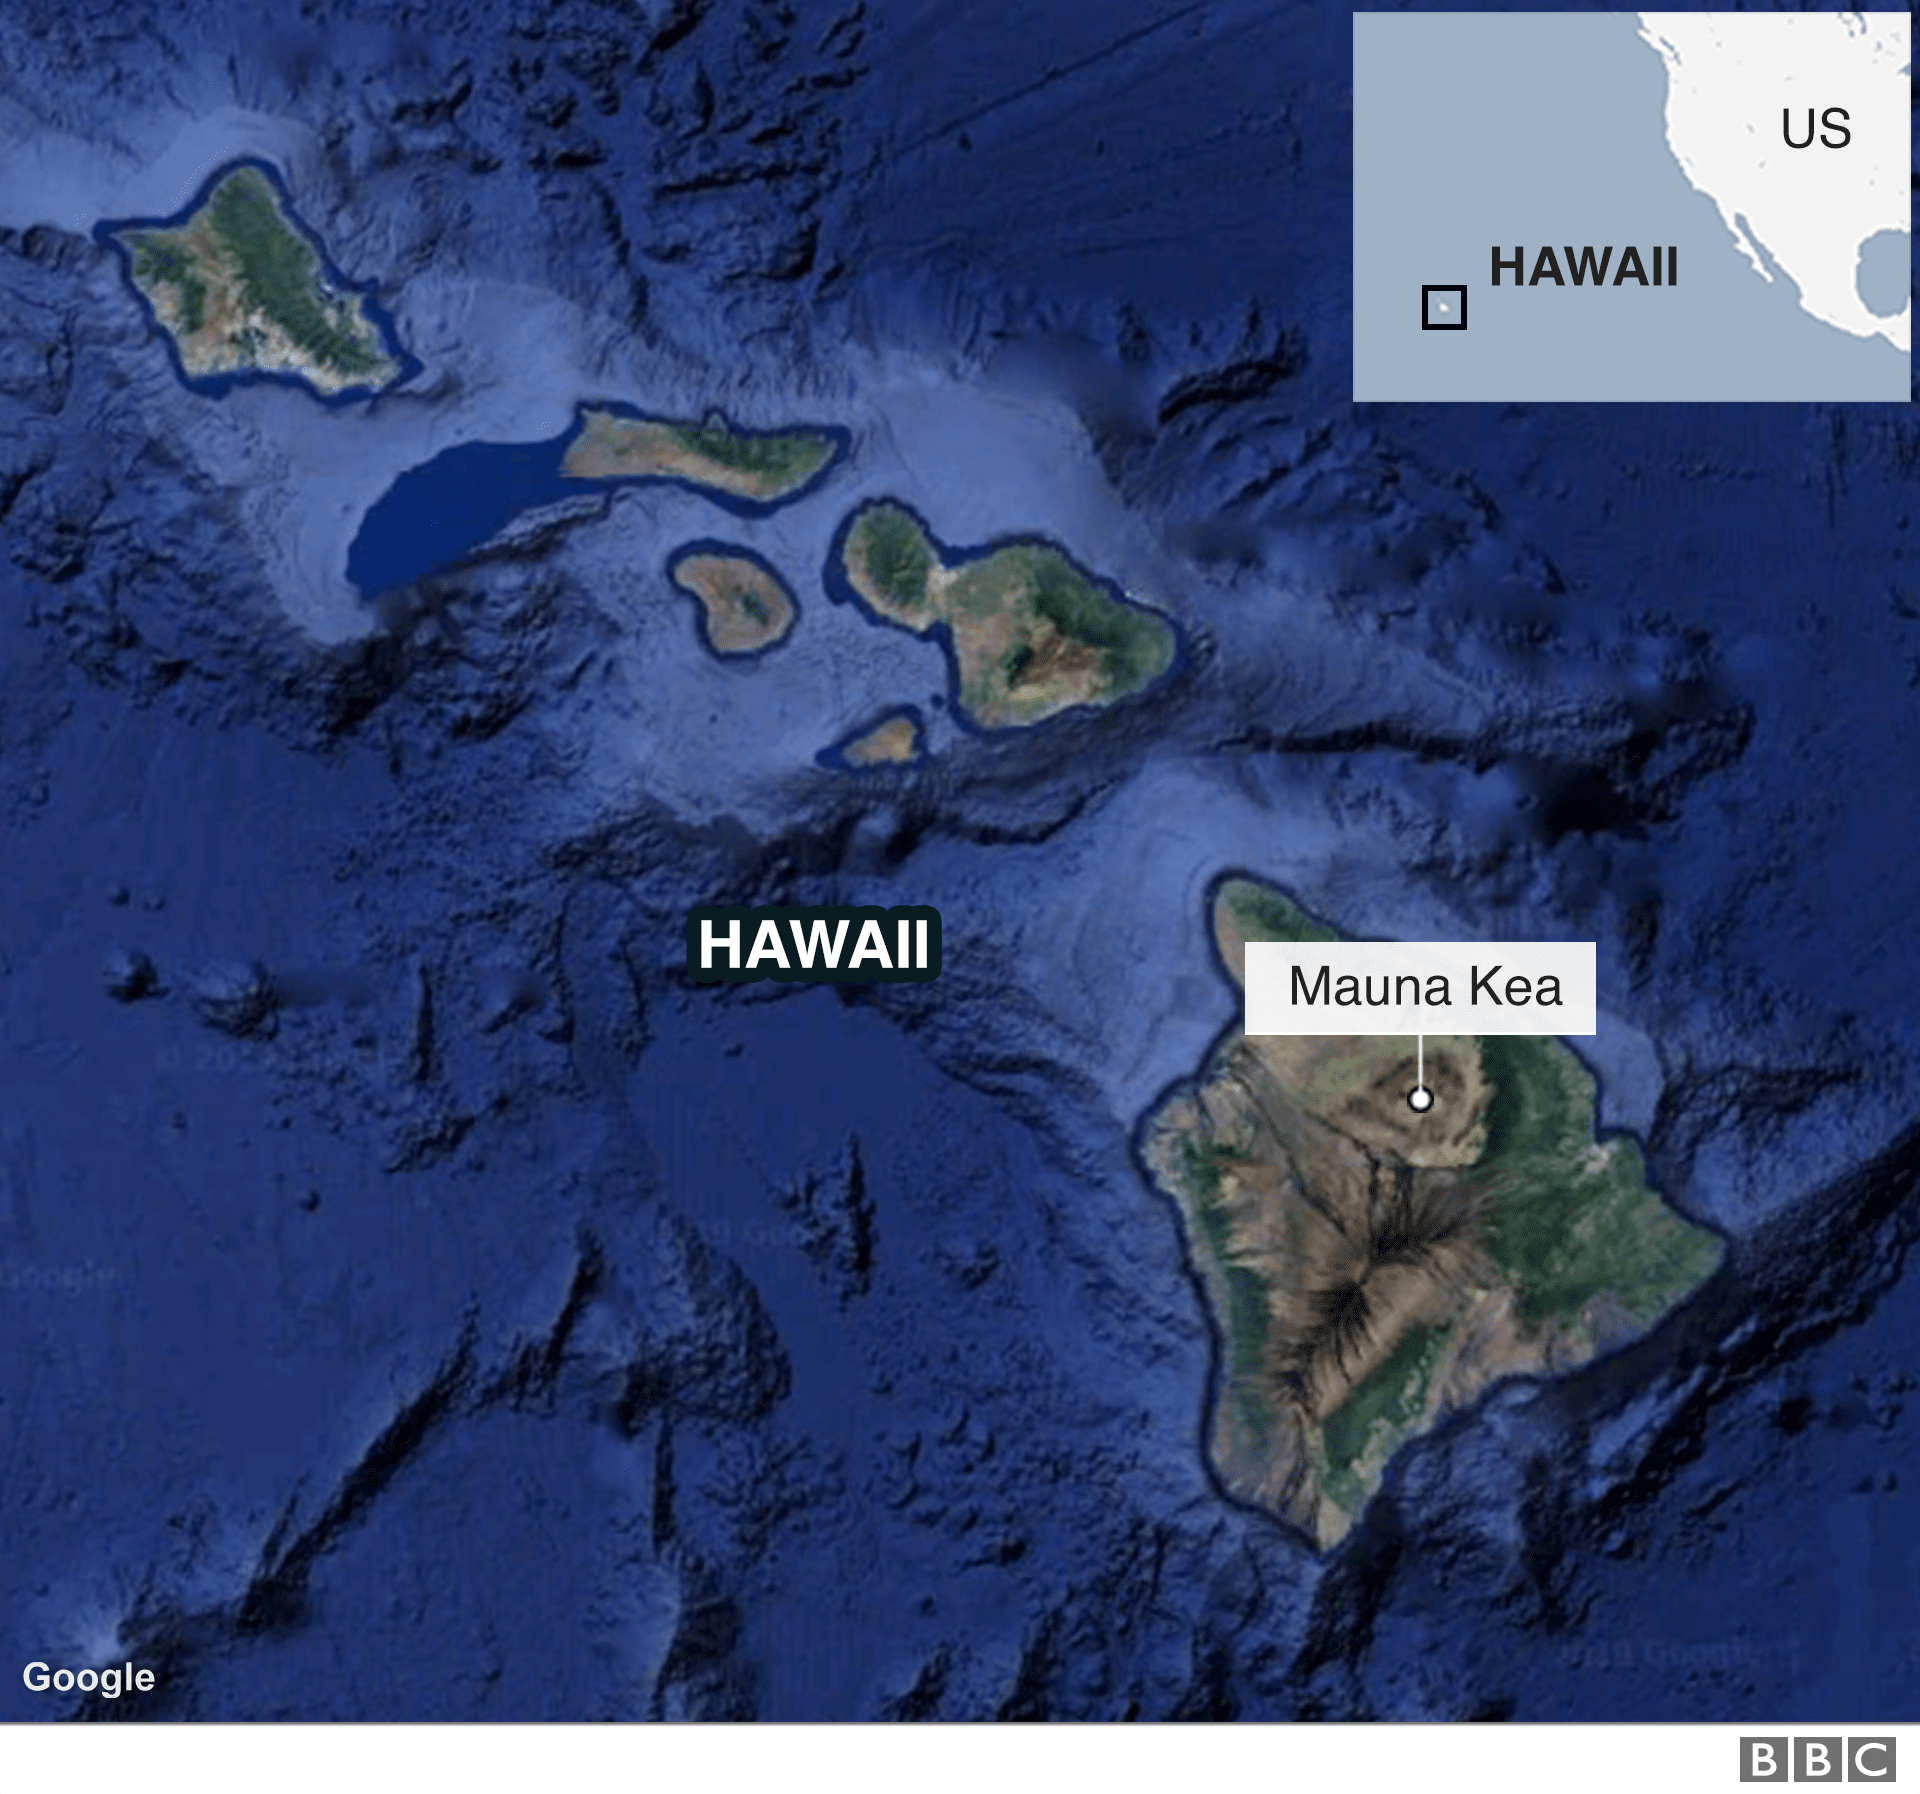 A map shows the location of the Mauna Kea